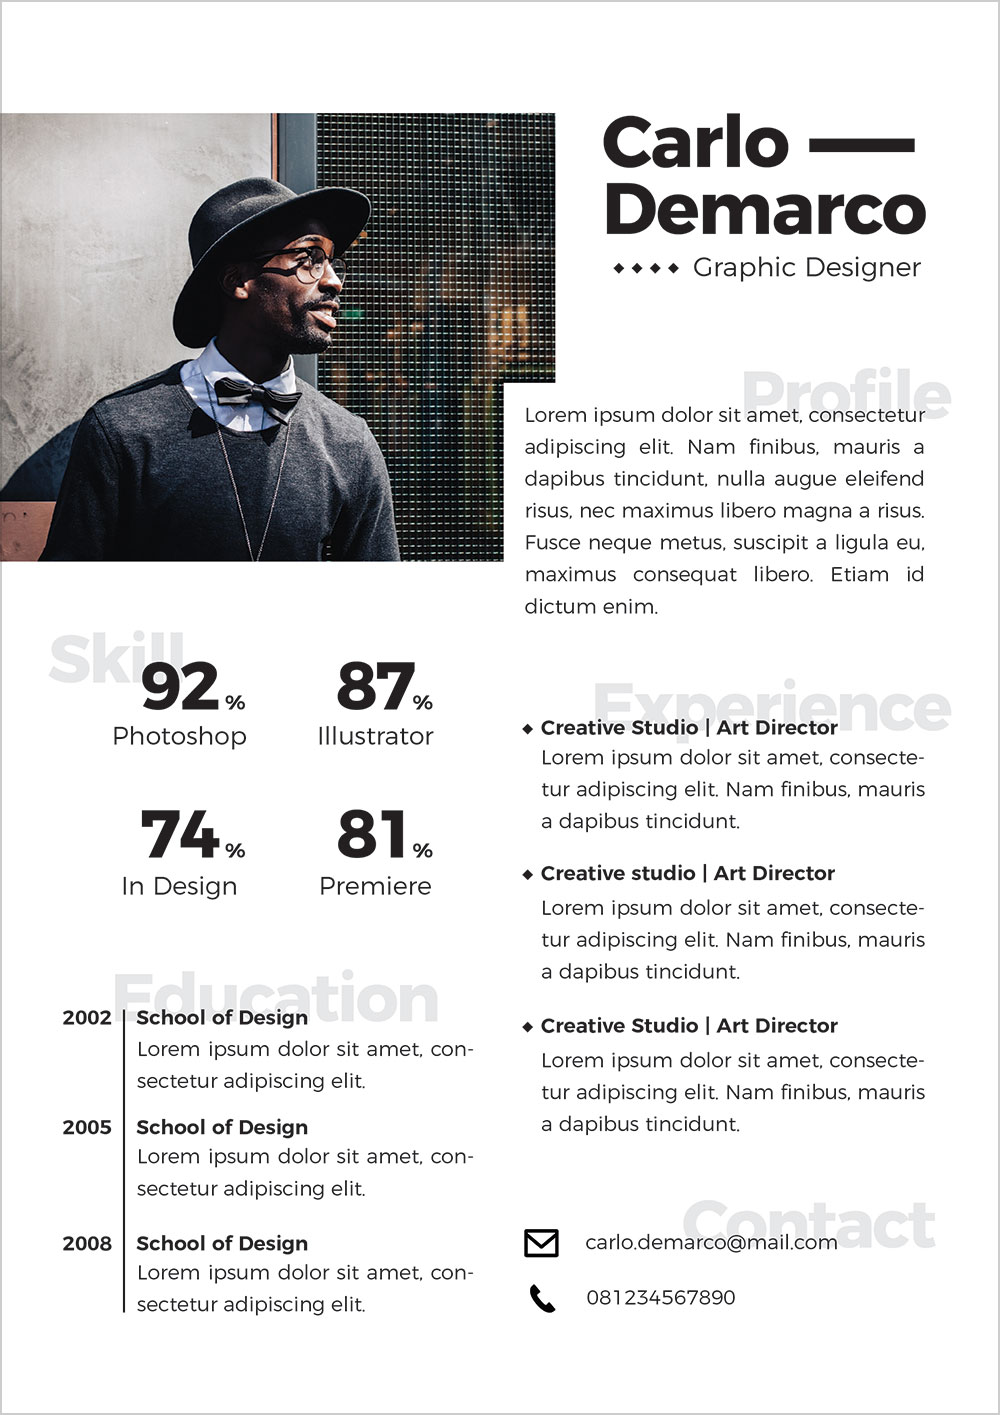 Free-Modern-Resume-Template-in-Ai-Format-for-Interior-&-Graphic-Designers